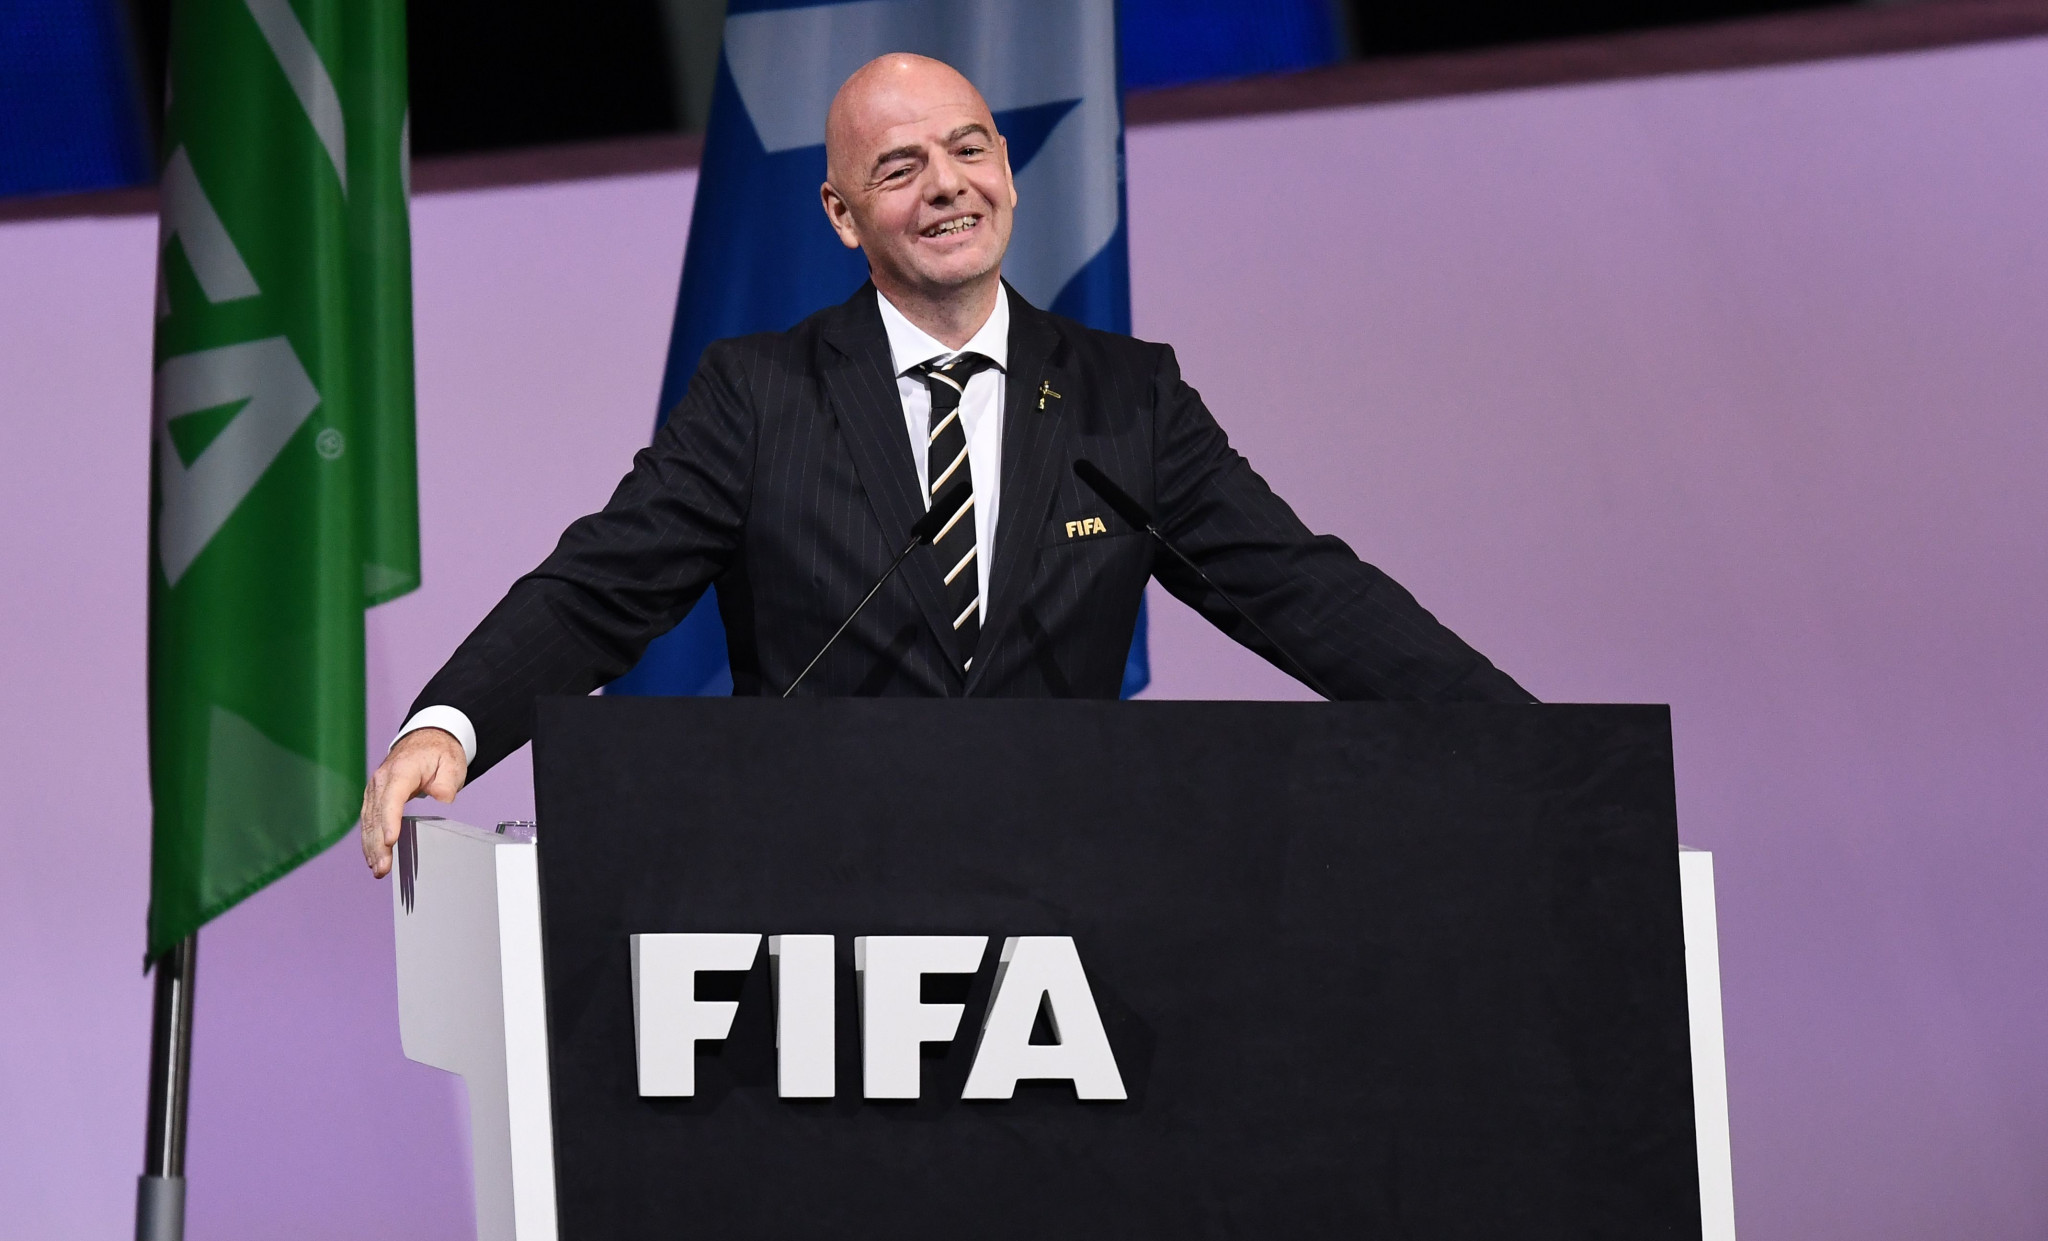 Gianni Infantino was re-elected FIFA President by acclamation last week ©Getty Images